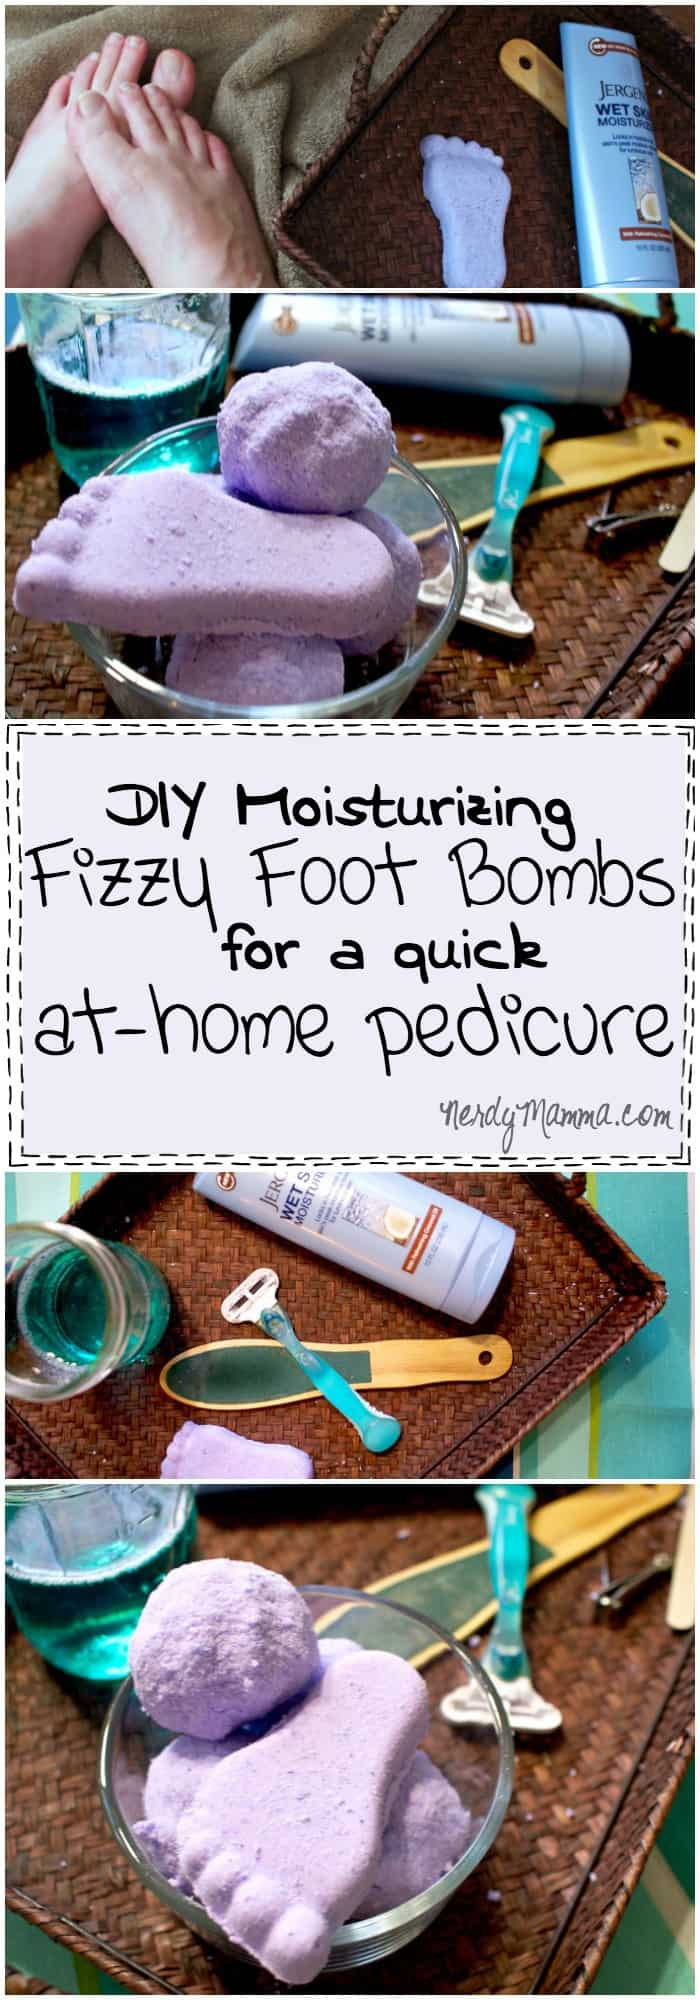 I love these DIY Moisturizing Fizzy Foot Bomb for a Quick At-Home Pedicure...makes my feet silky smooth and totally relaxed. #ad #WetSkinMoisturizer #cbias